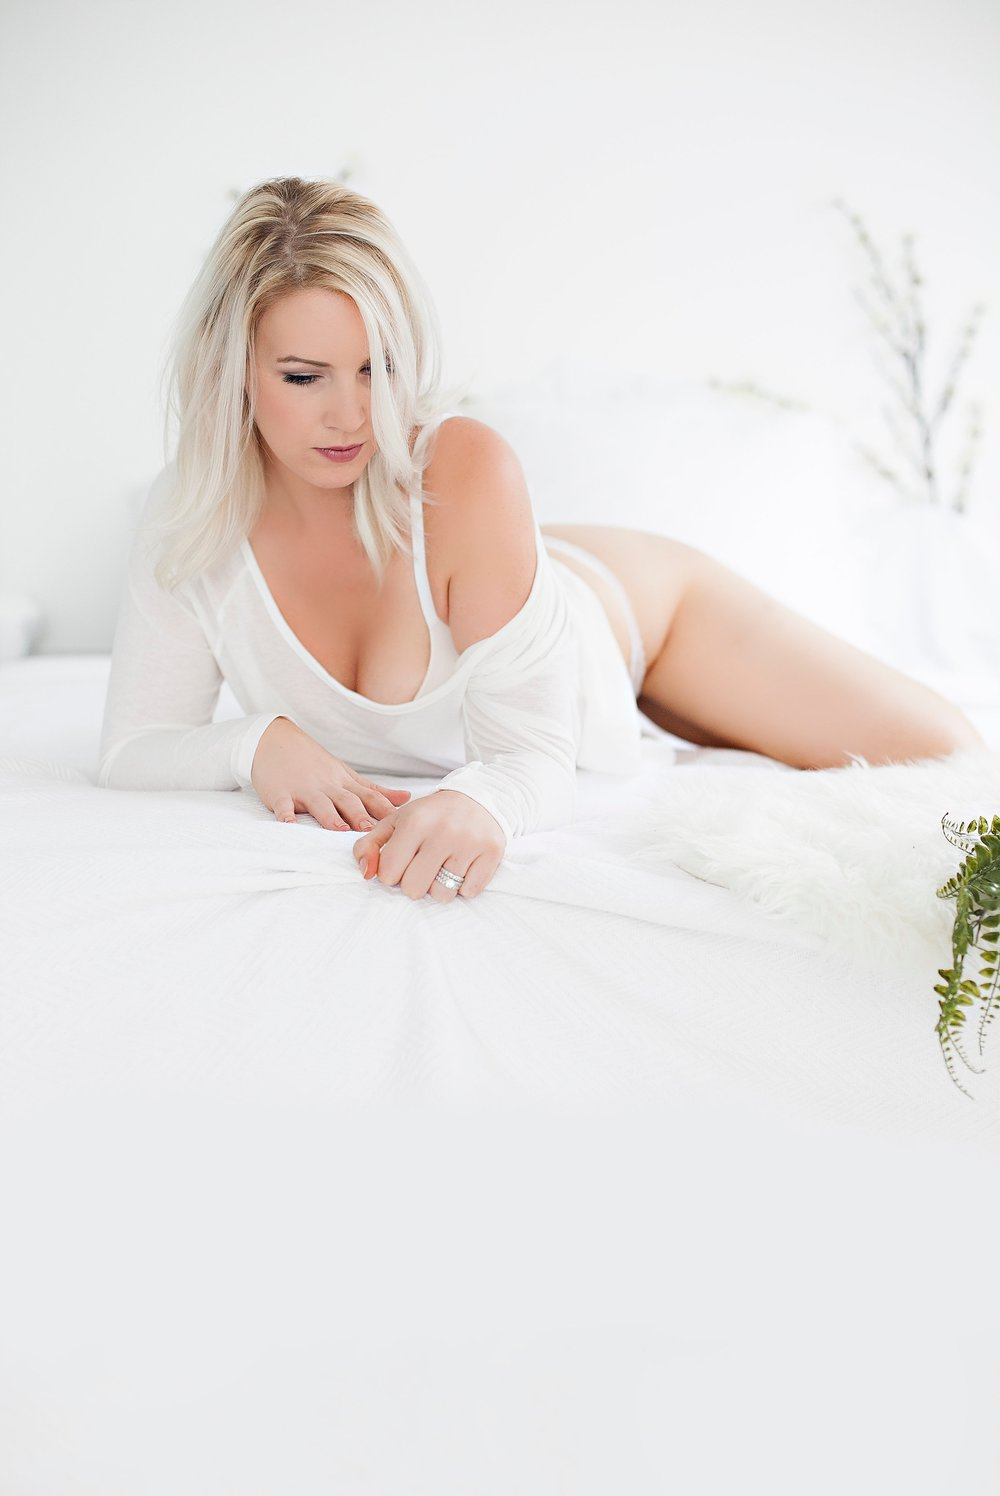 Boudoir-Collective-Fine-Art-Boudoir-Blog-and-Magazine-De-La-Vie-Botanical-Boudoir-10.jpg